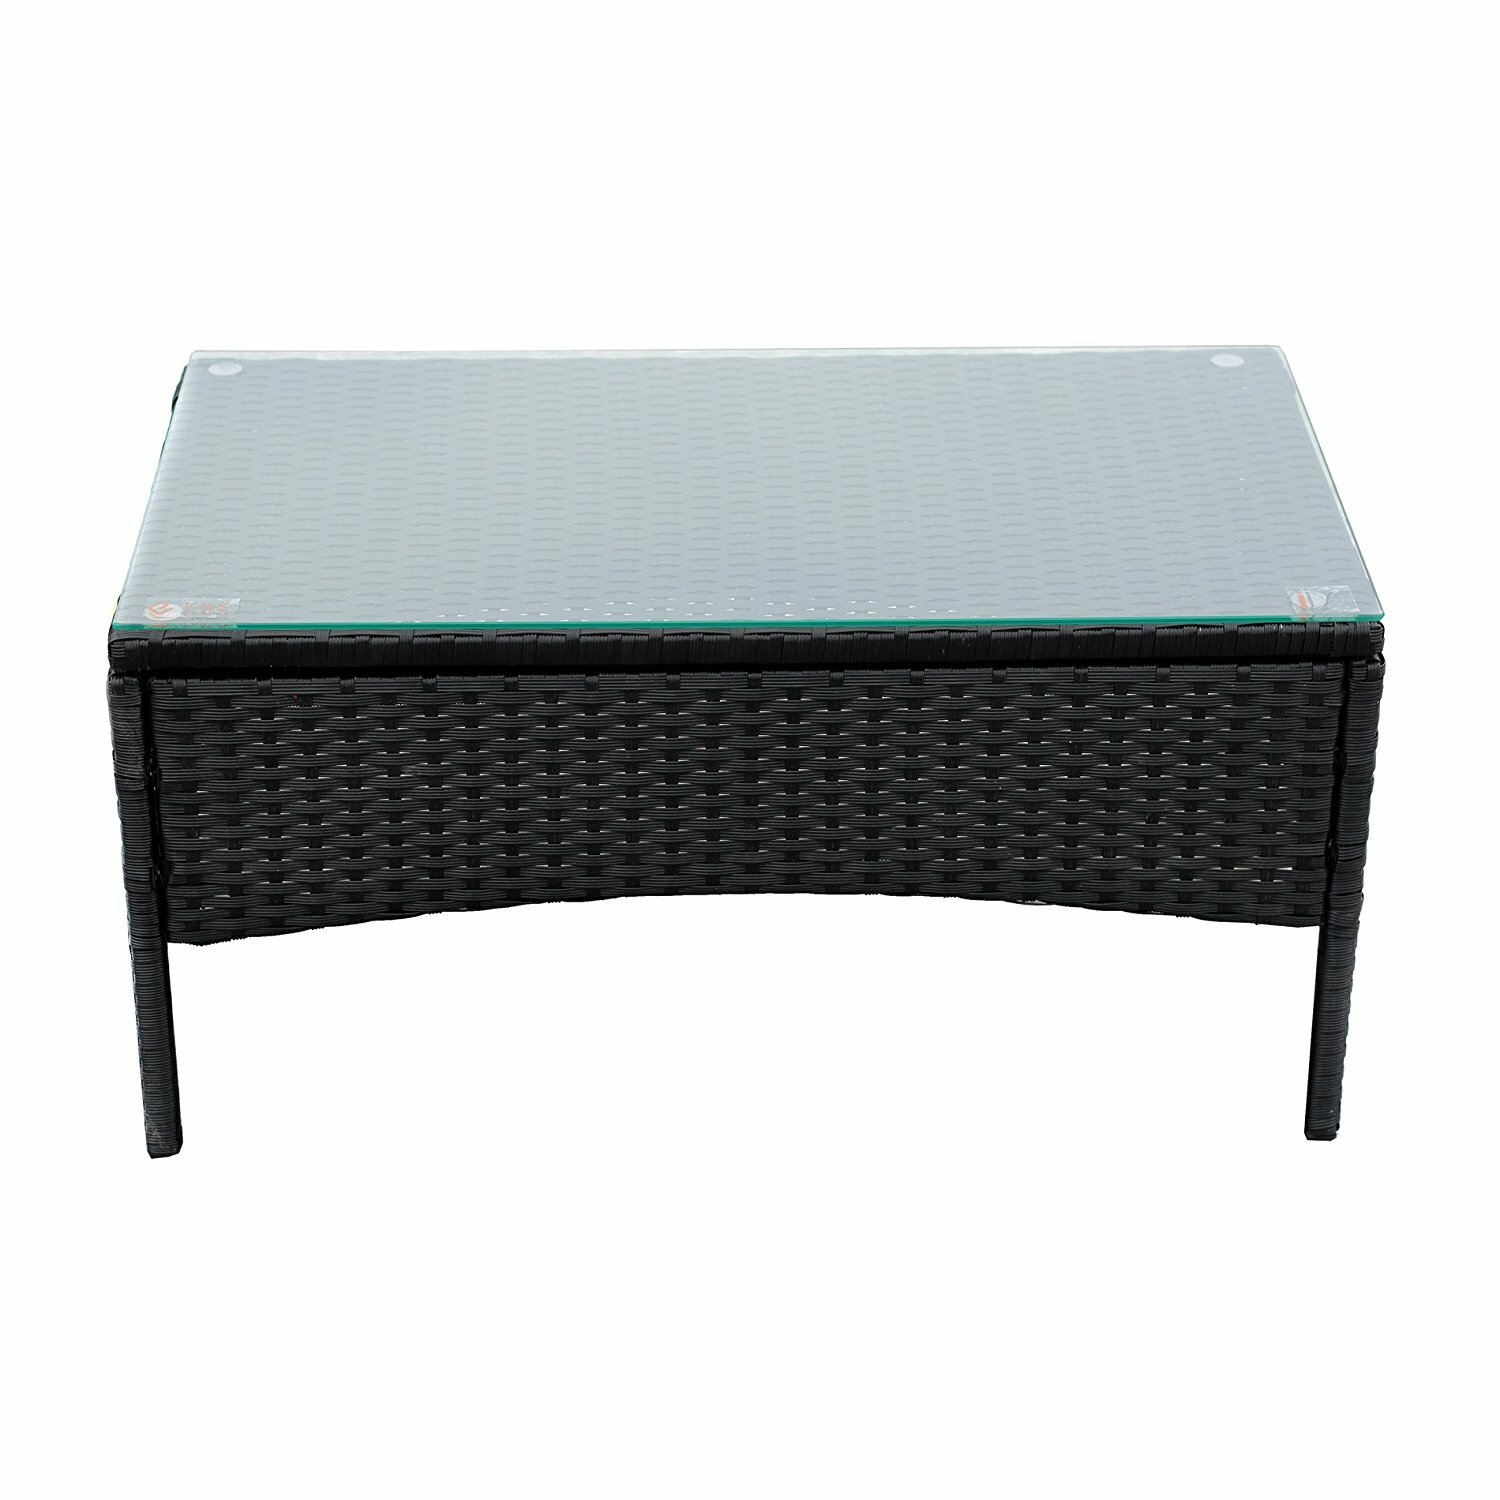 Idsonlinecorp 4 piece lounge seating group with cushions reviews - Indoor bench cushions clearance ...